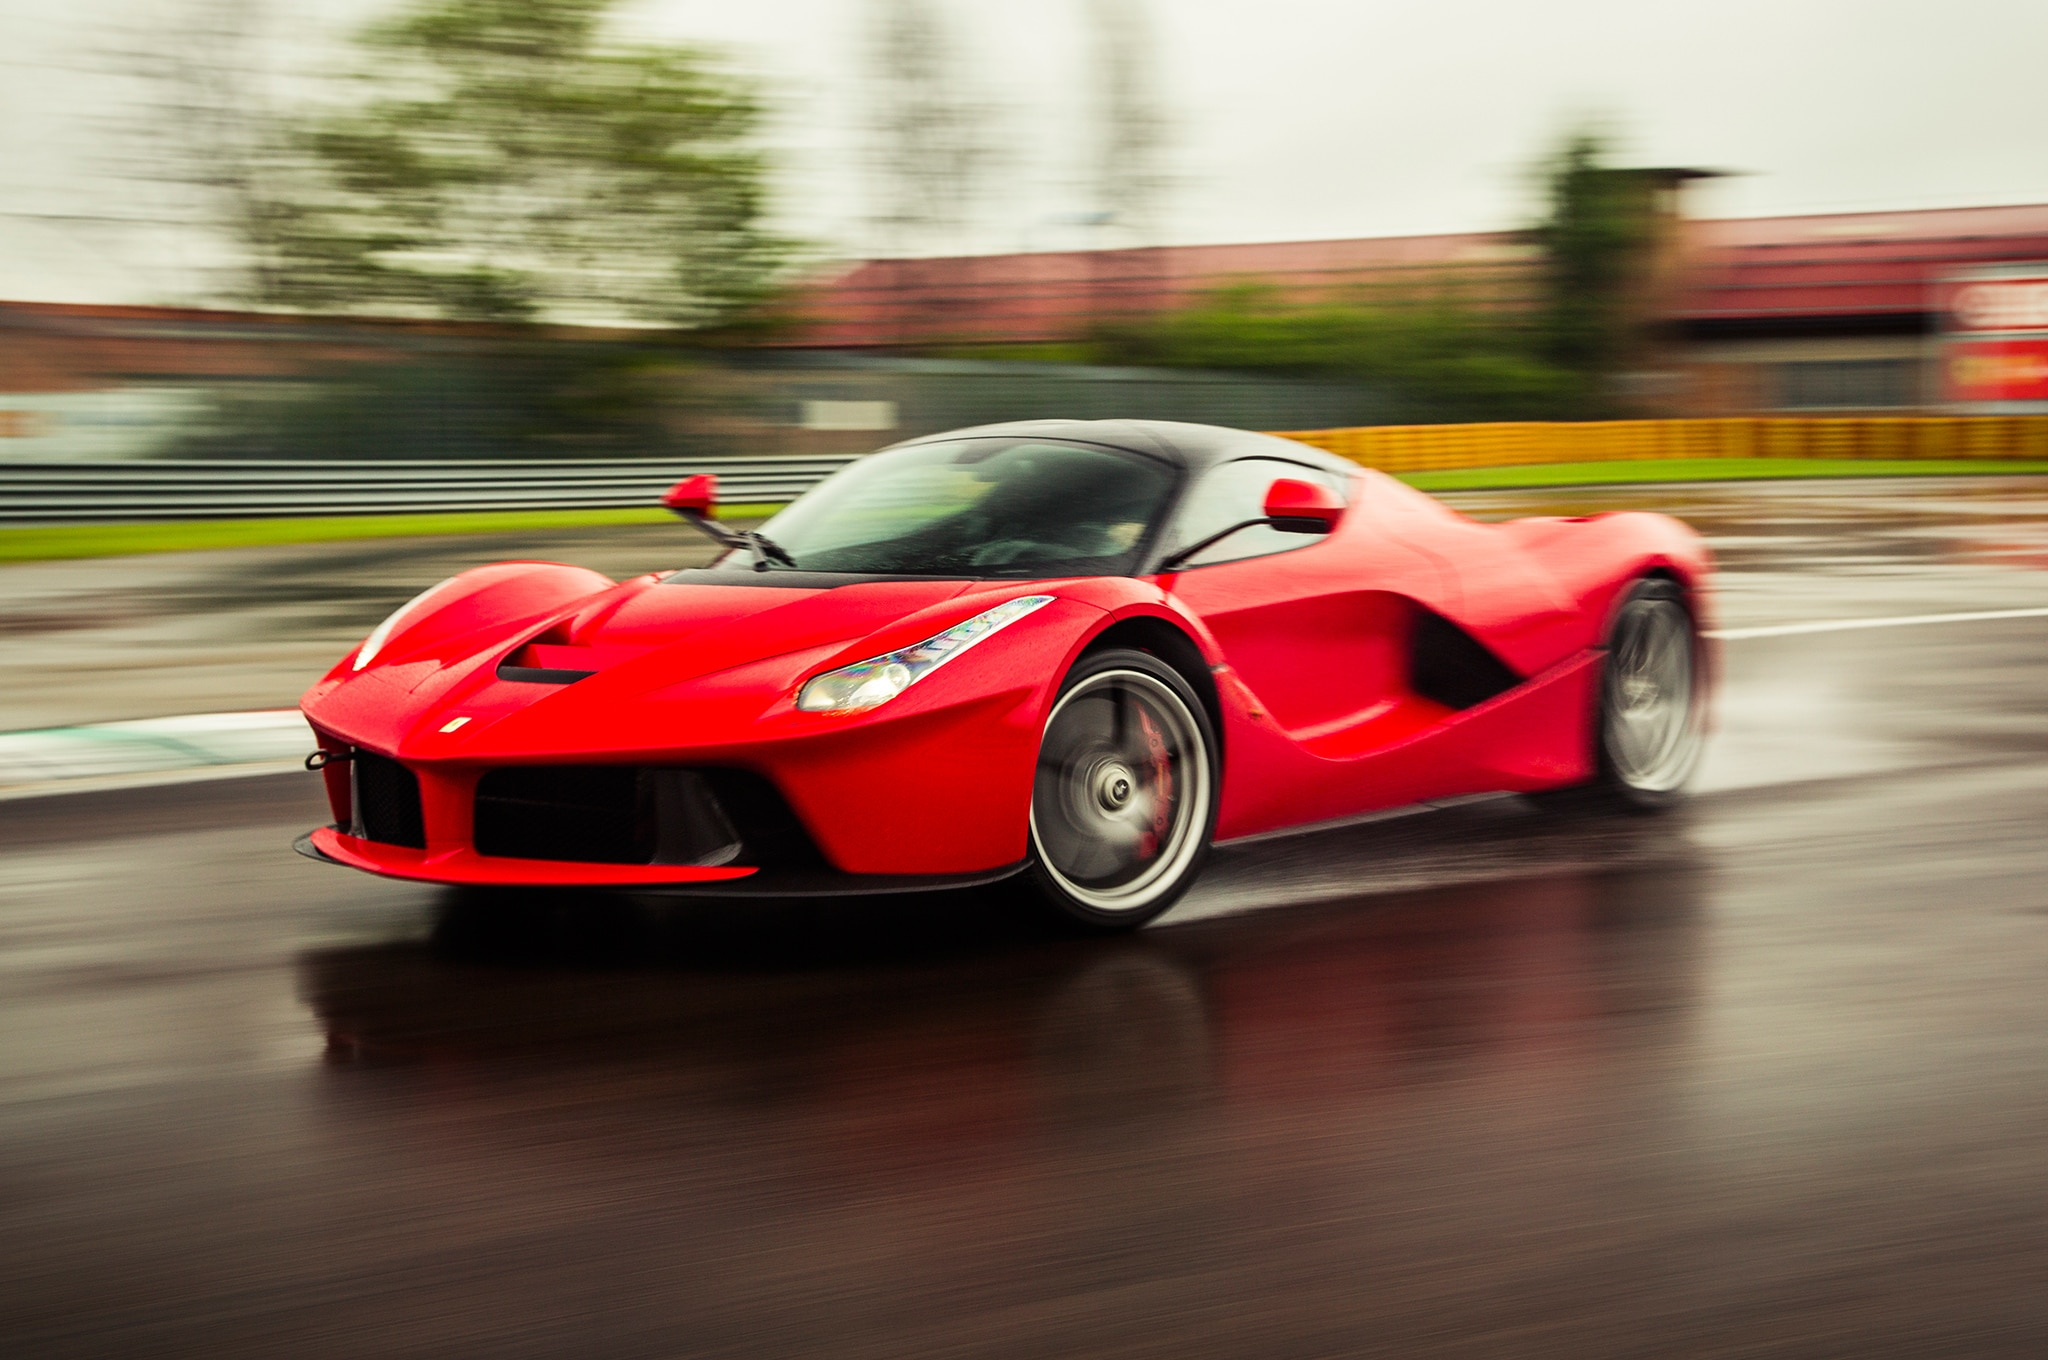 2014 Ferrari Laferrari Front Three Quarter Motion Track1